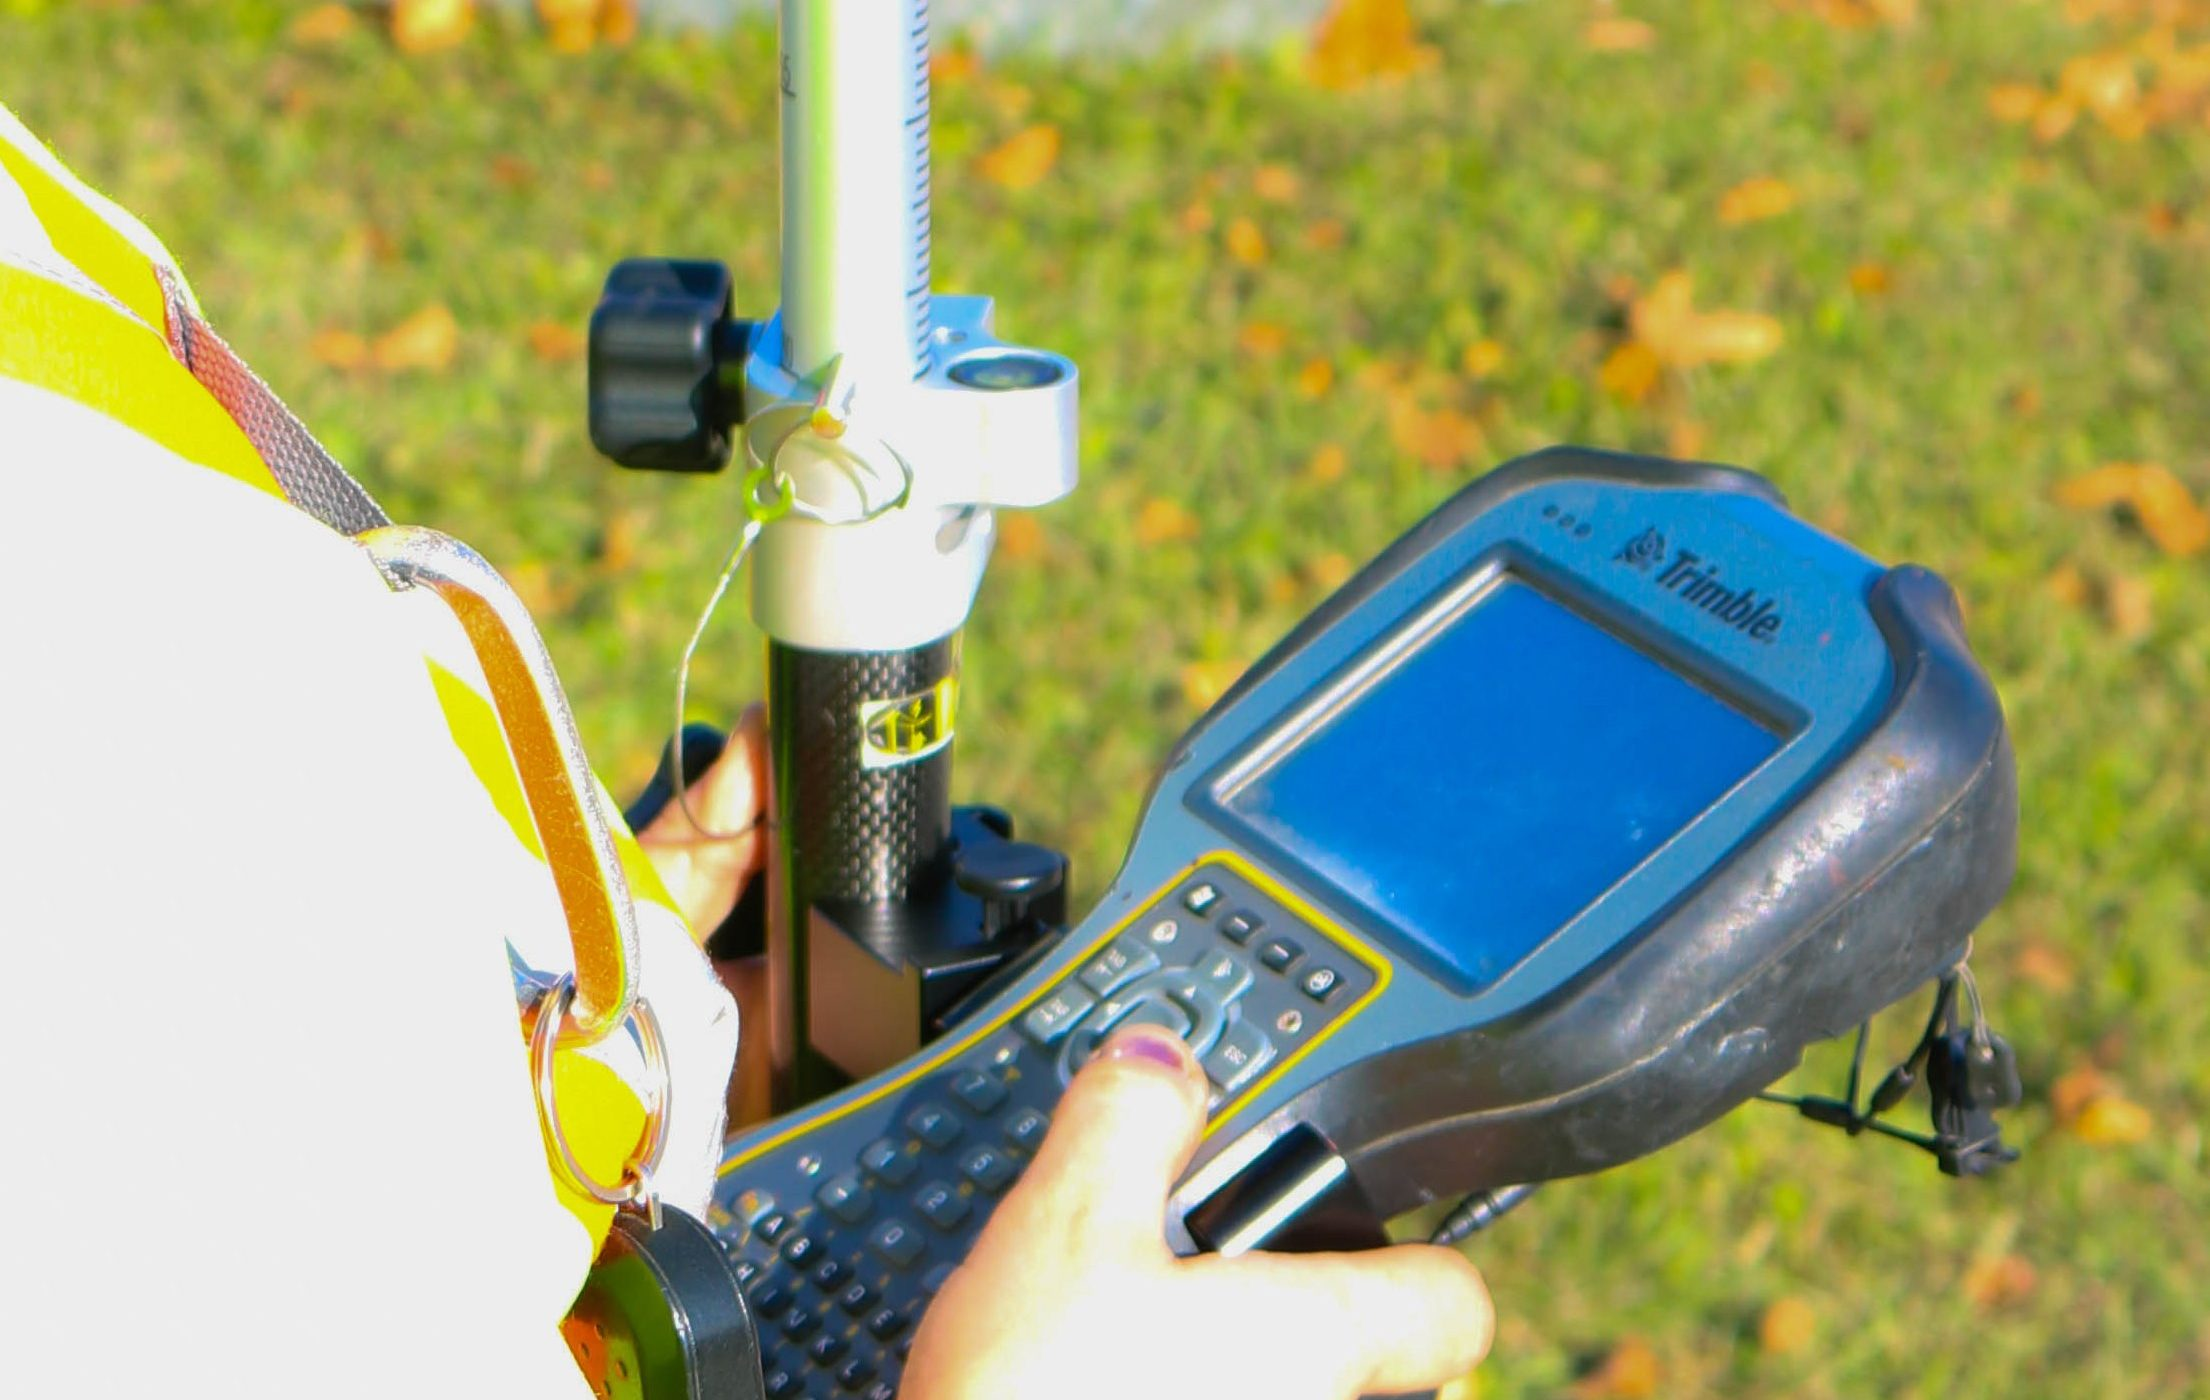 The latest technology, highly trained staff — Field Technicians are expertly trained on the latest tools and technology.